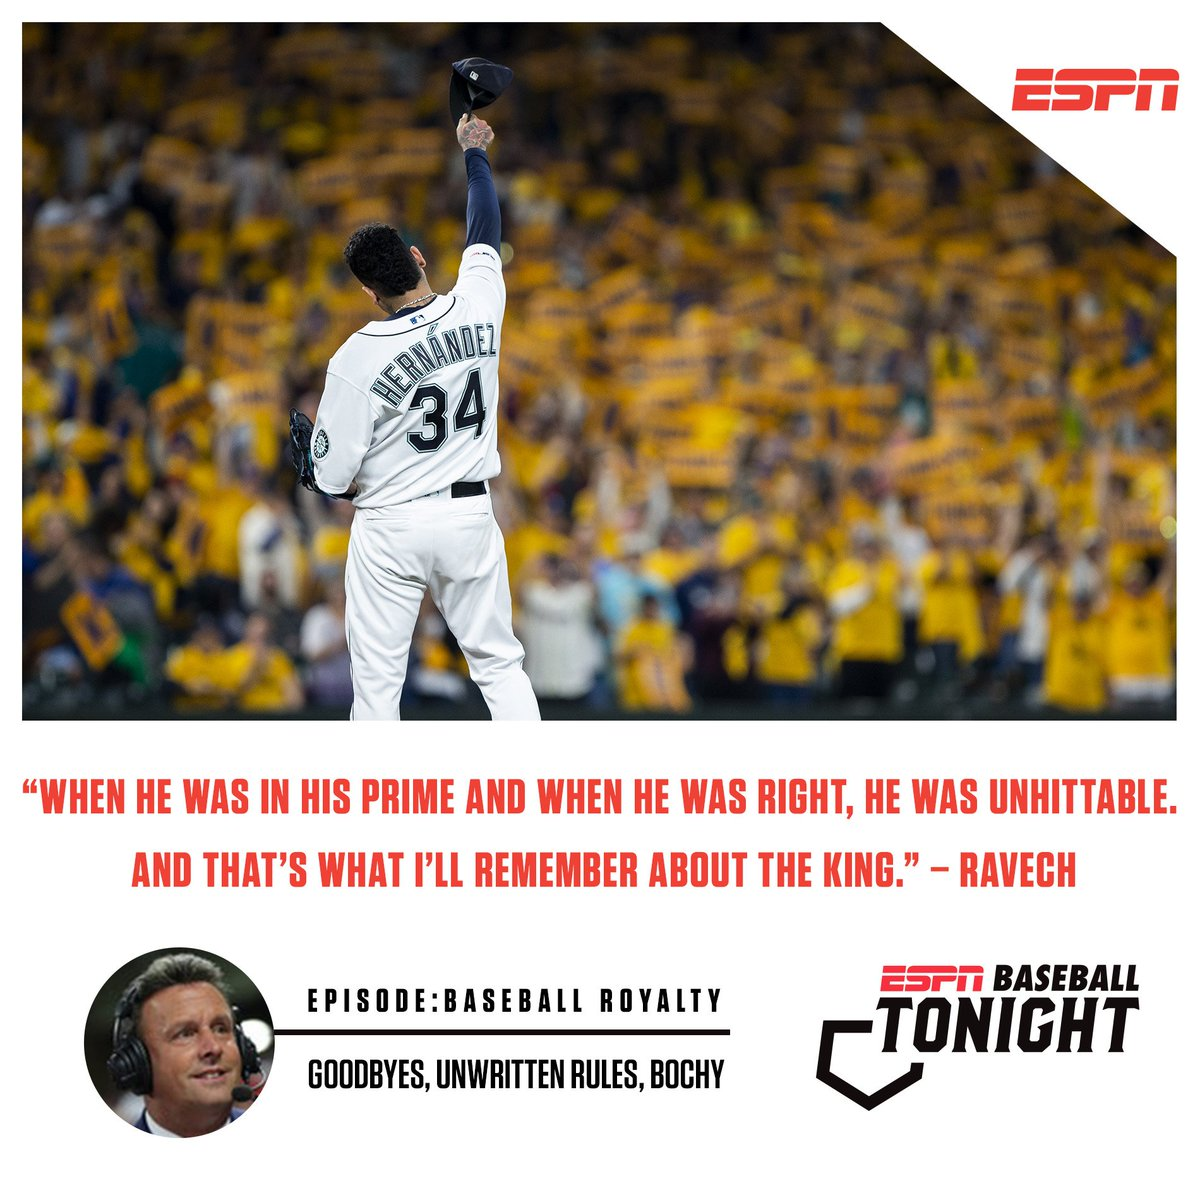 Last night, two big names in baseball said goodbye. @Buster_ESPN and crew evaluate their careers... LISTEN to the Baseball Tonight podcast: es.pn/2mbnnvR